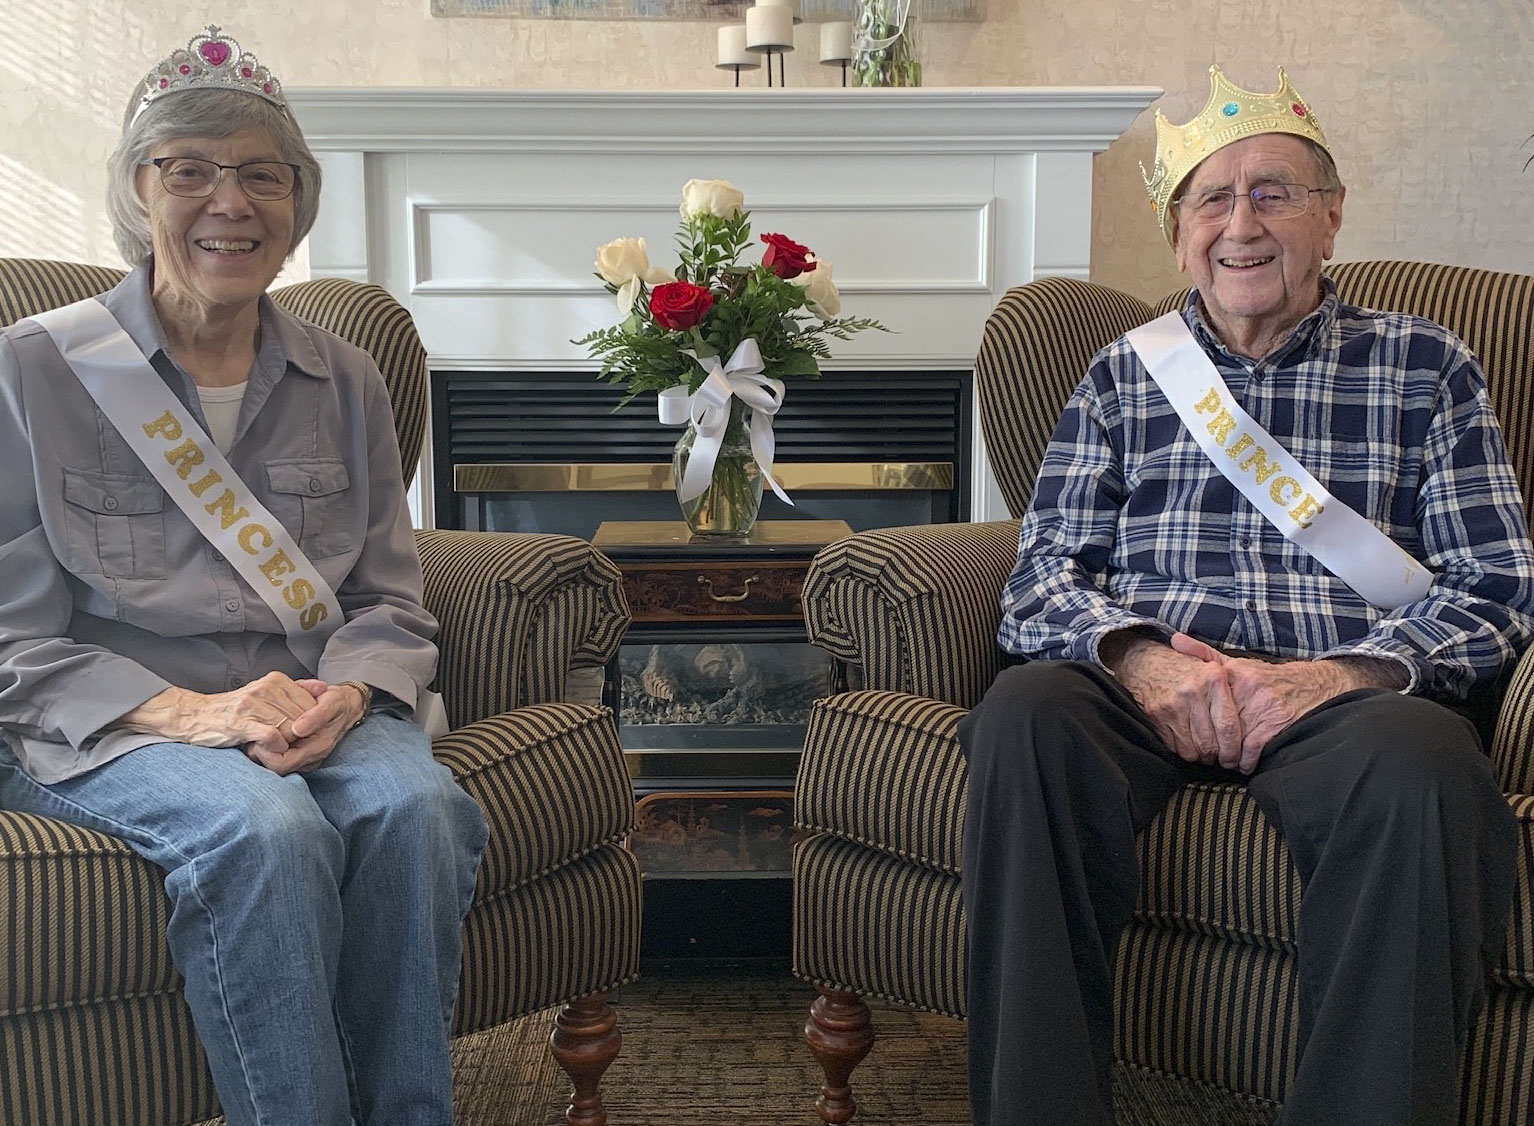 Husband and wife duo Betty and Armin (Jake) Jacobs were crowned princess and prince for Valentine's Day at Pennington Square.